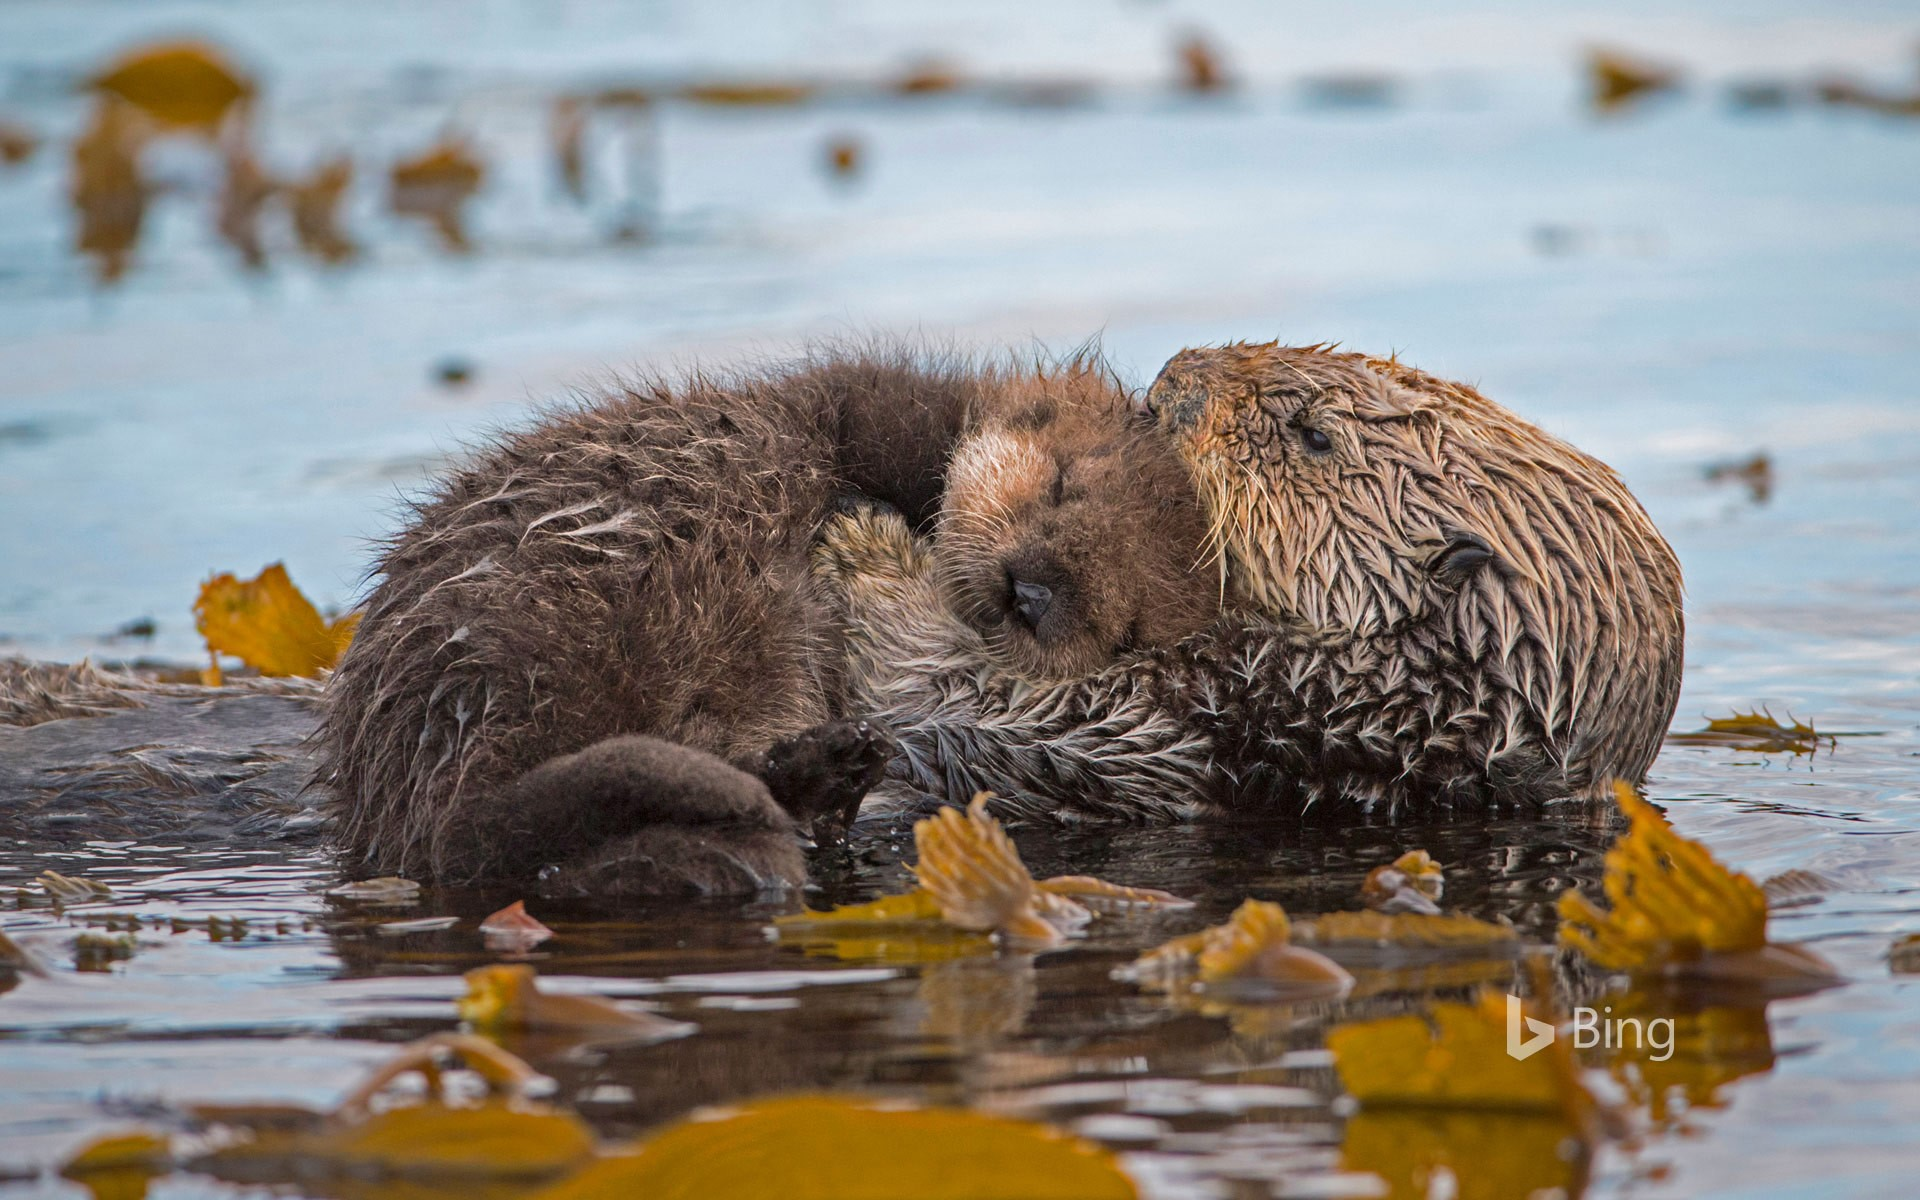 Sea otter mother and newborn pup in Monterey Bay, California